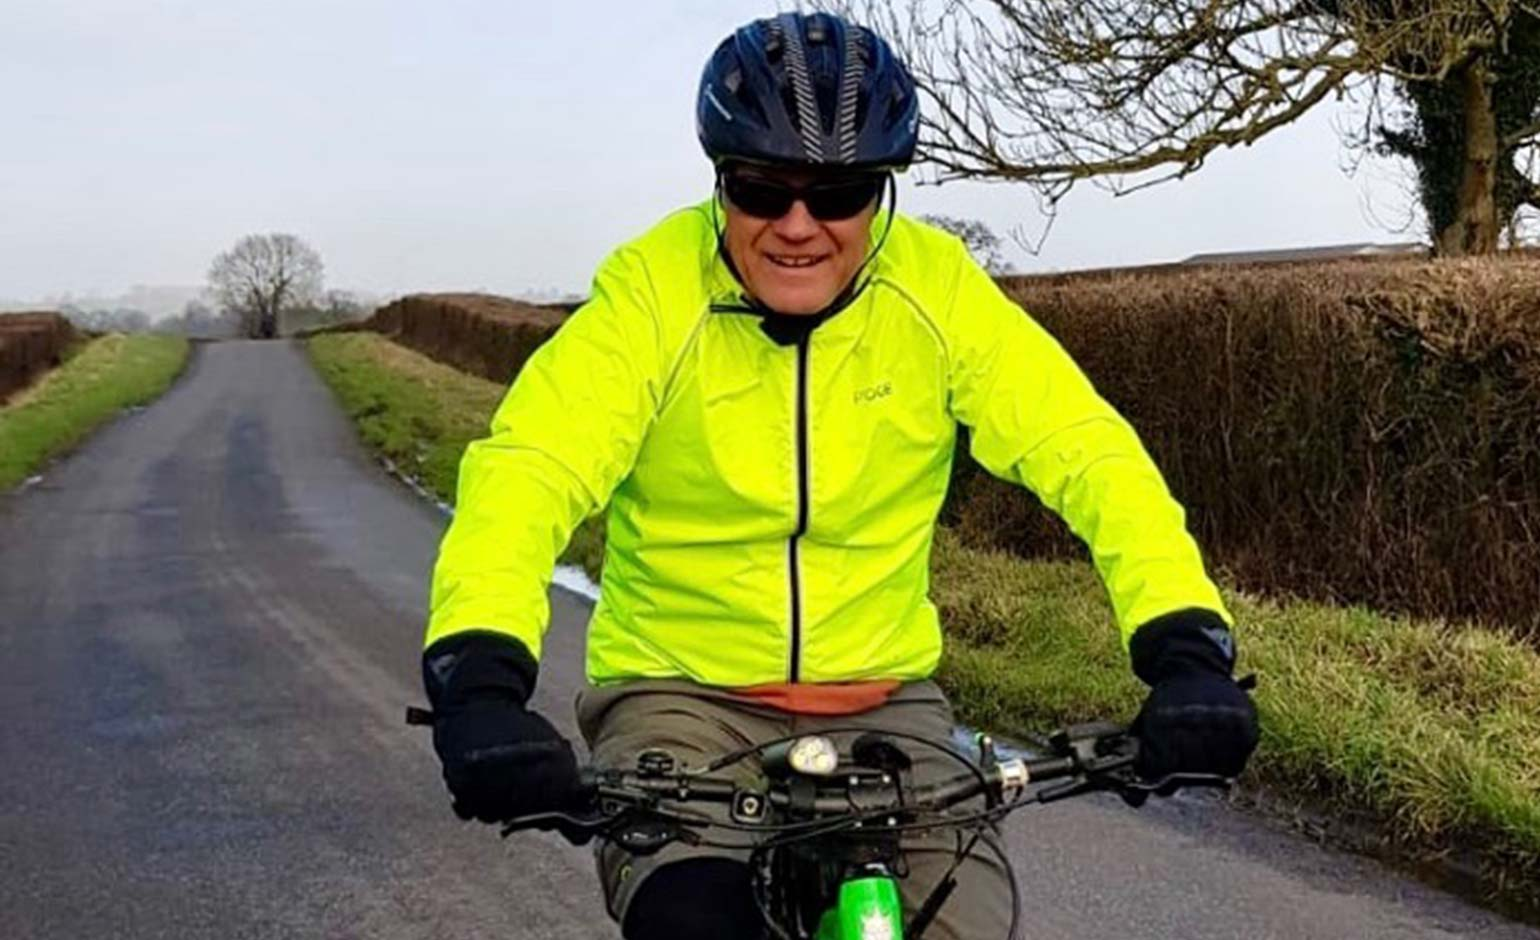 Local business takes on £15,000 fundraising challenge for Bath charity DHI